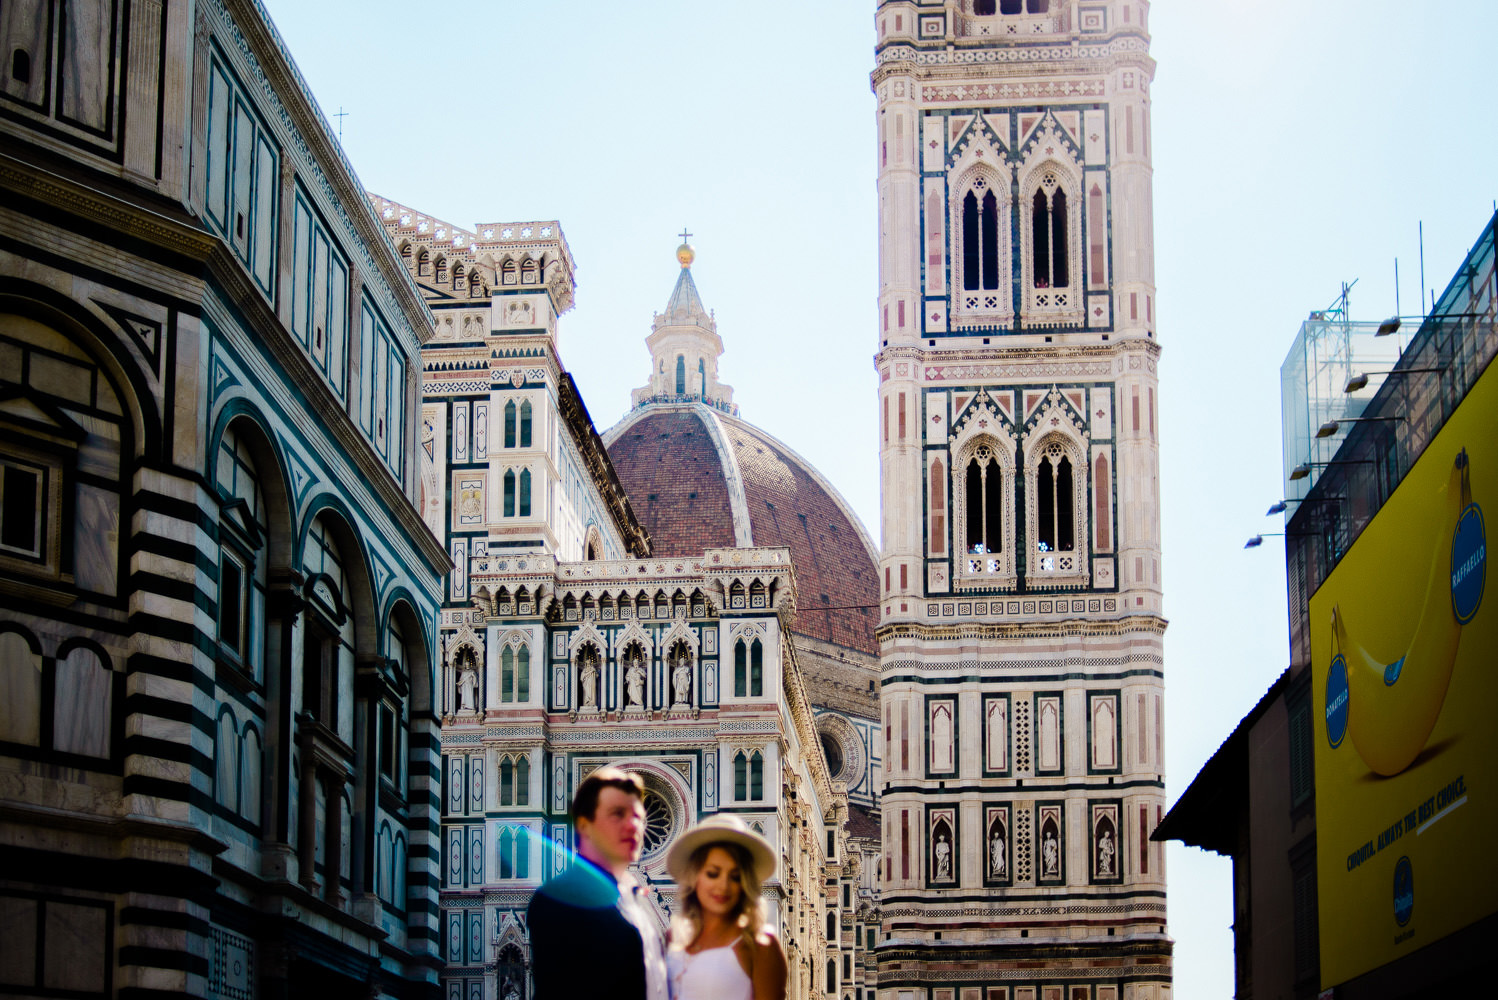 florence-wedding-photographer028.jpg